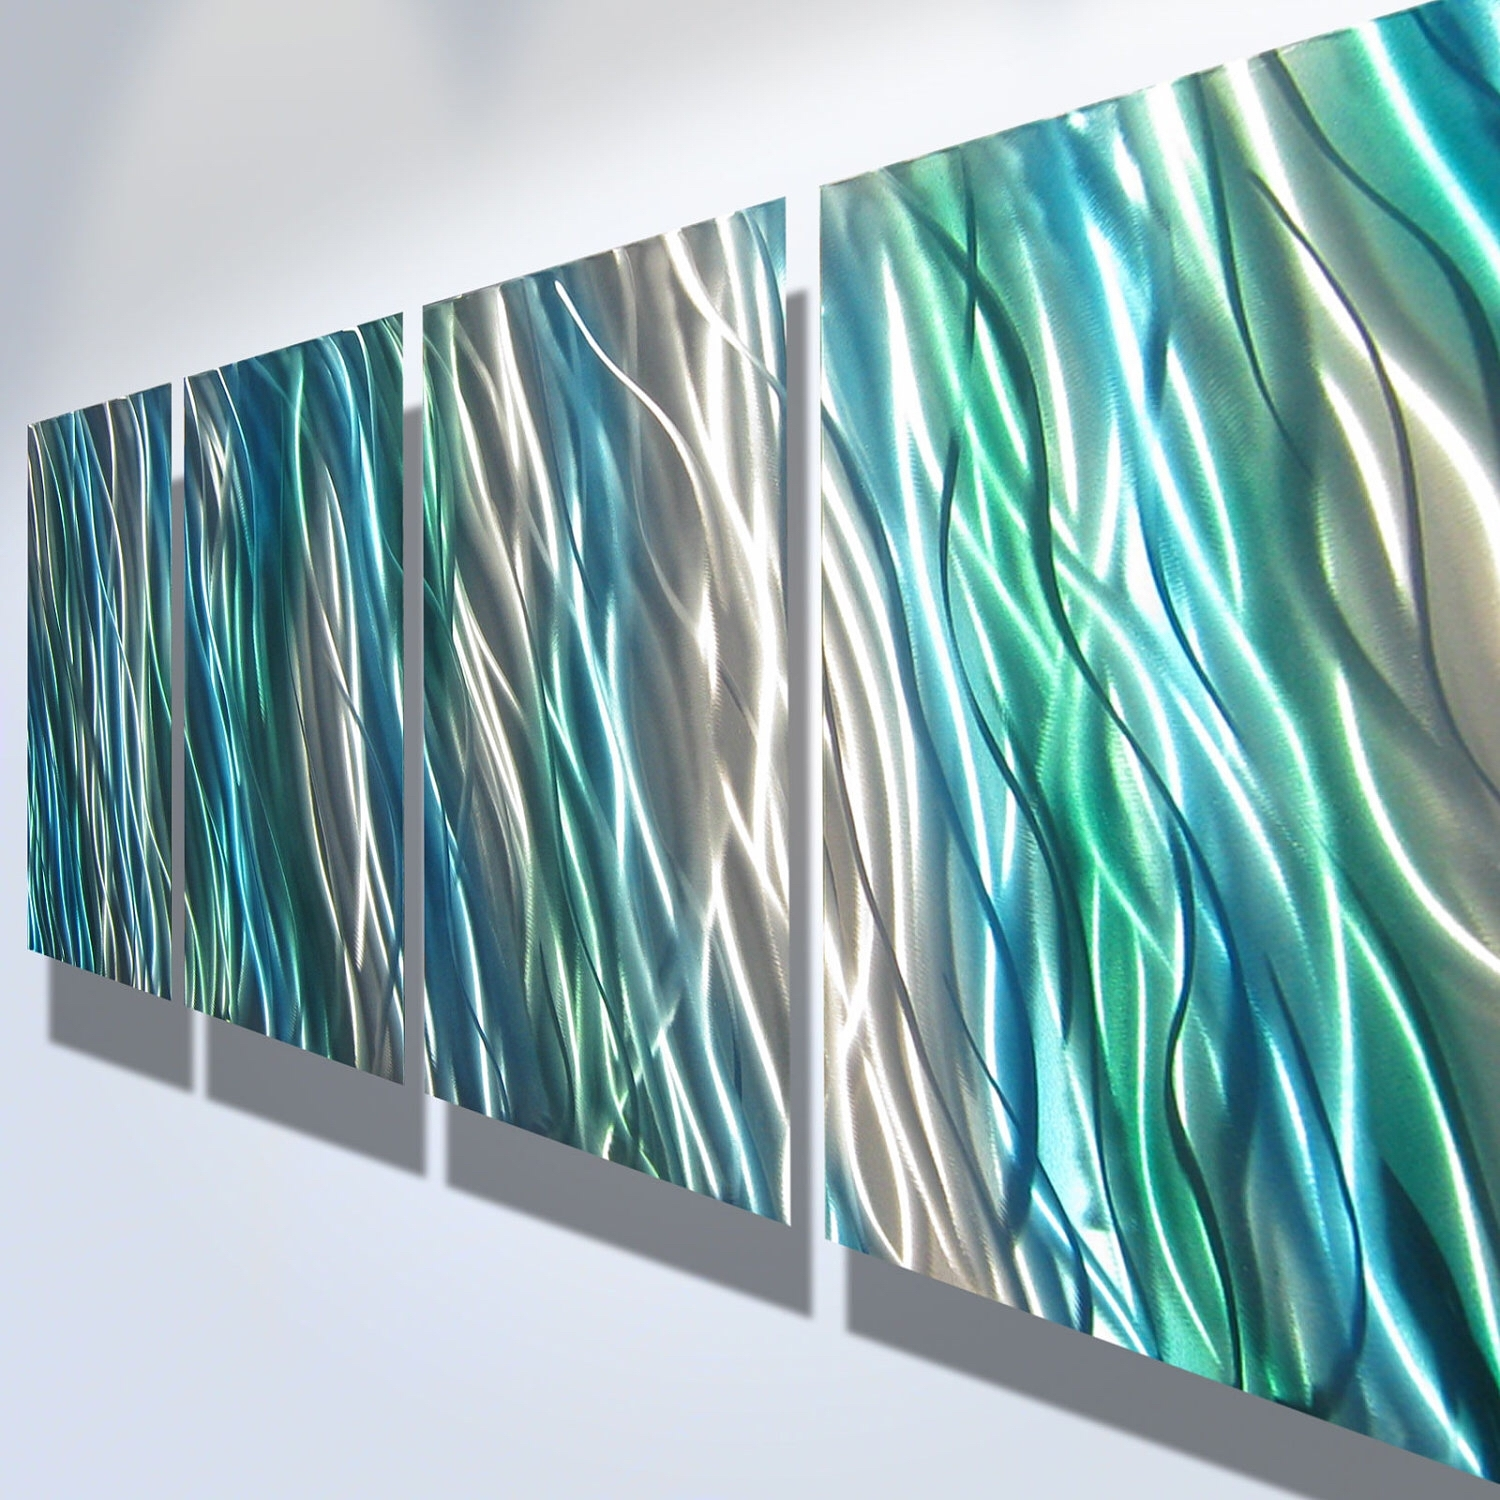 Metal Wall Art Decor Abstract Contemporary Modern Sculpture Throughout Current Abstract Outdoor Metal Wall Art (View 13 of 14)